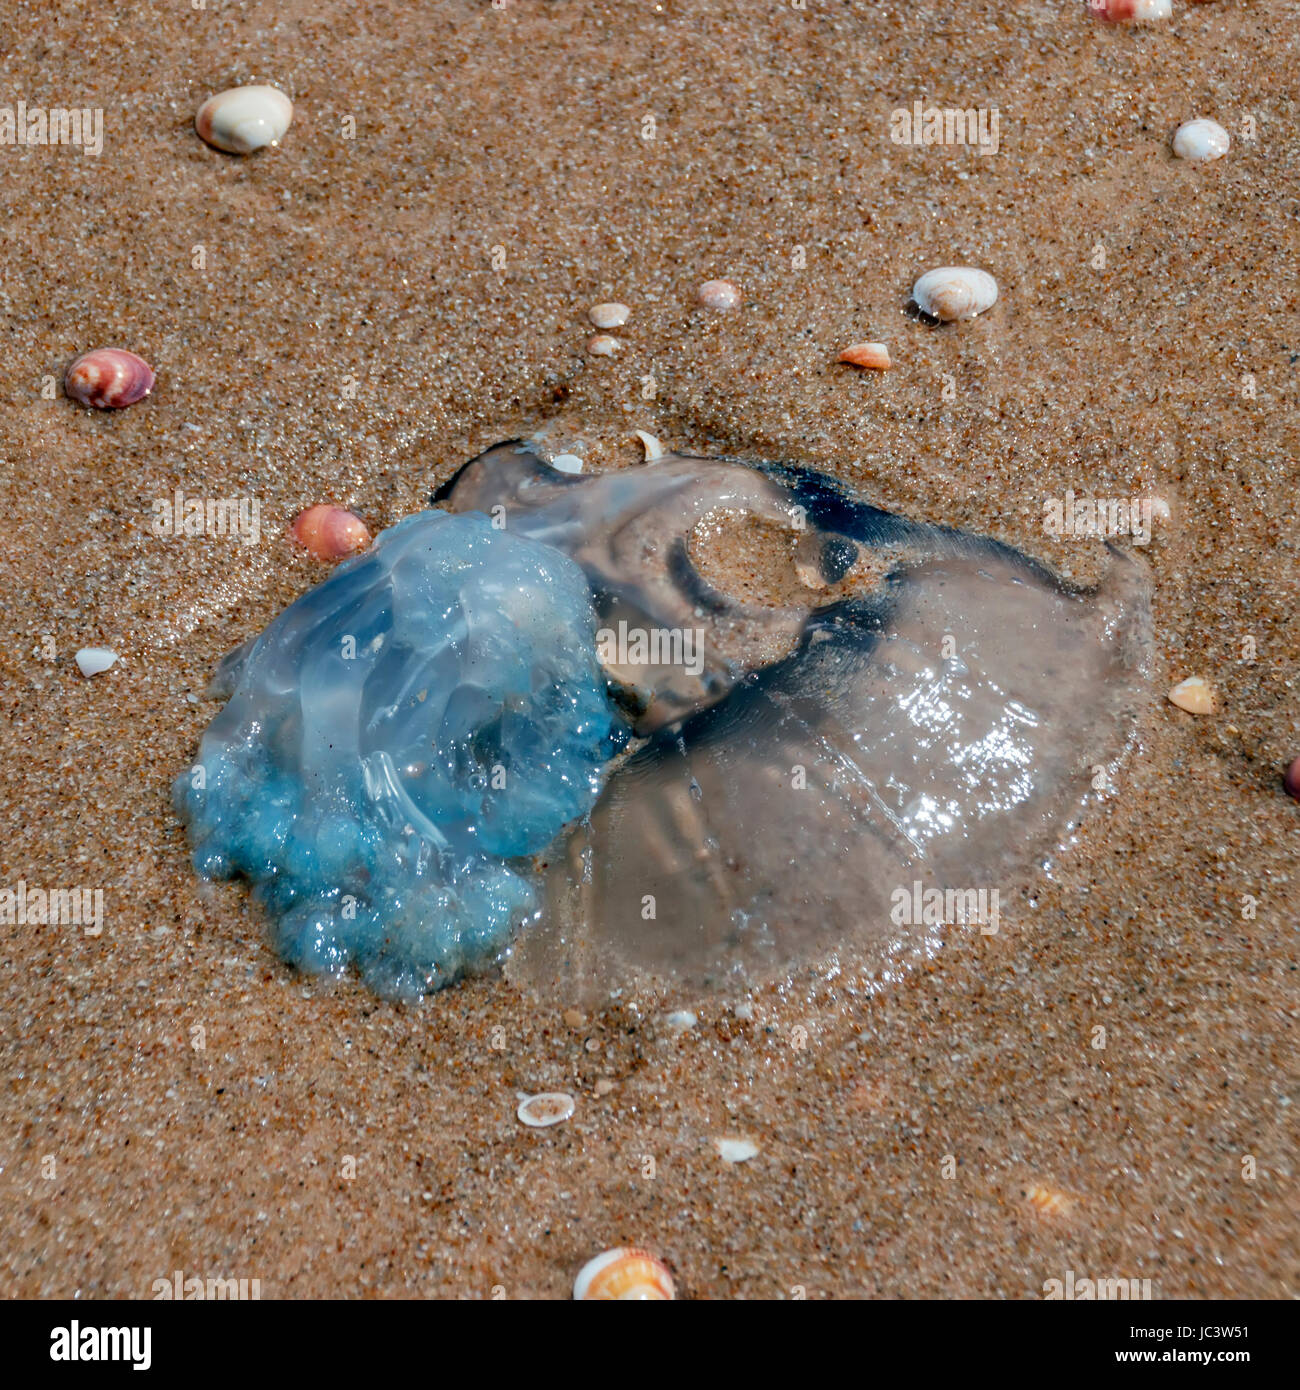 Jellyfish stranded ashore washed in mediterranean sea - Stock Image